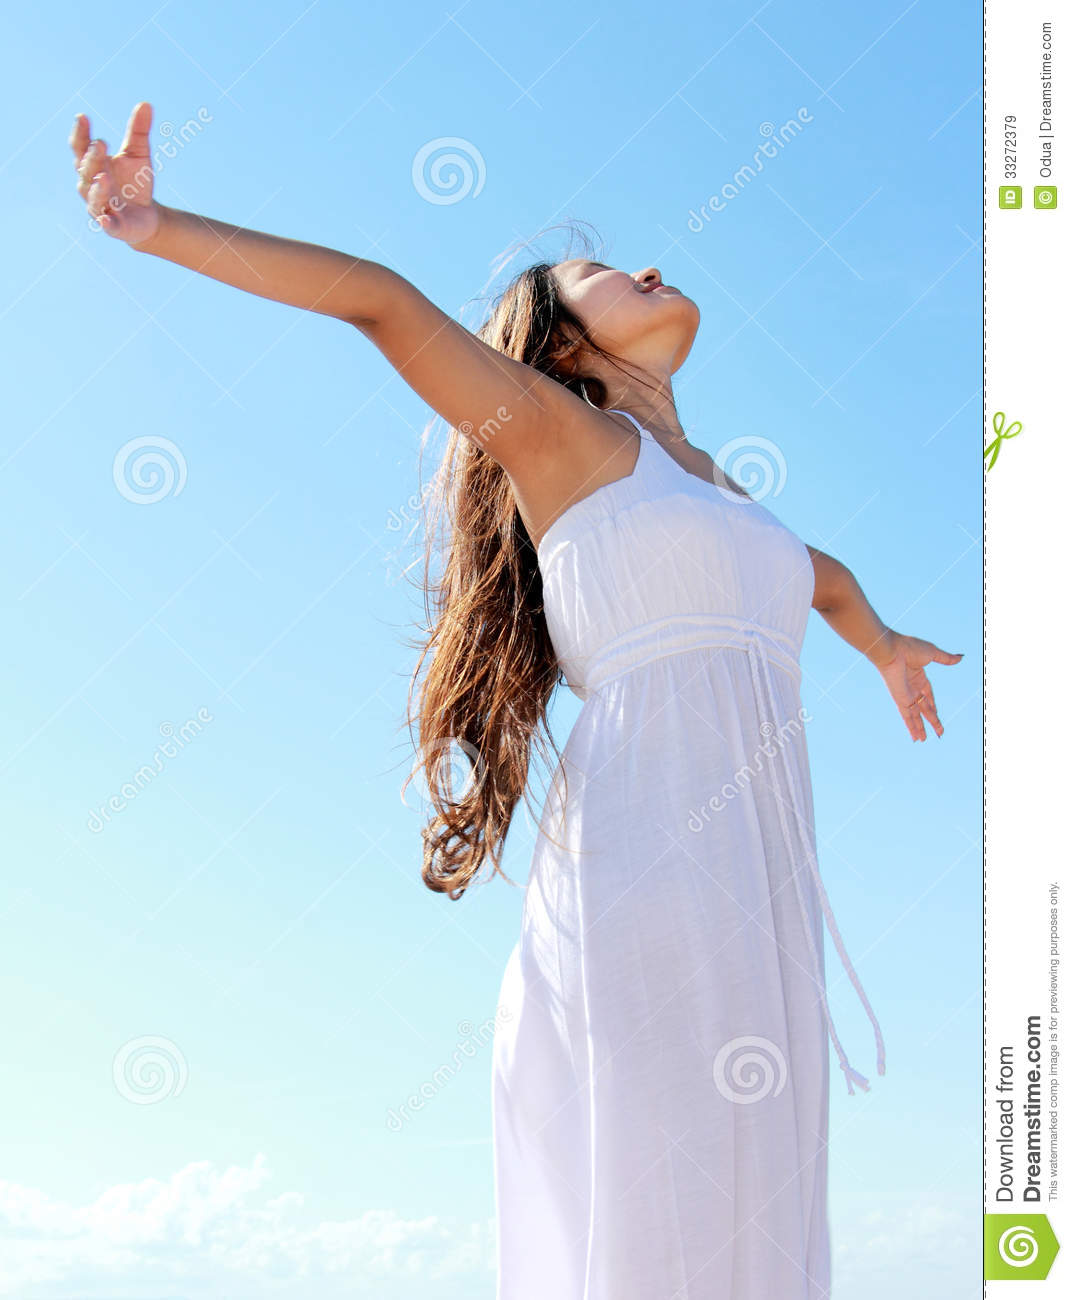 Woman Enjoying At Beach Stock Image Image Of Pleasure: Woman With Arms Open Enjoying Her Freedom Stock Image